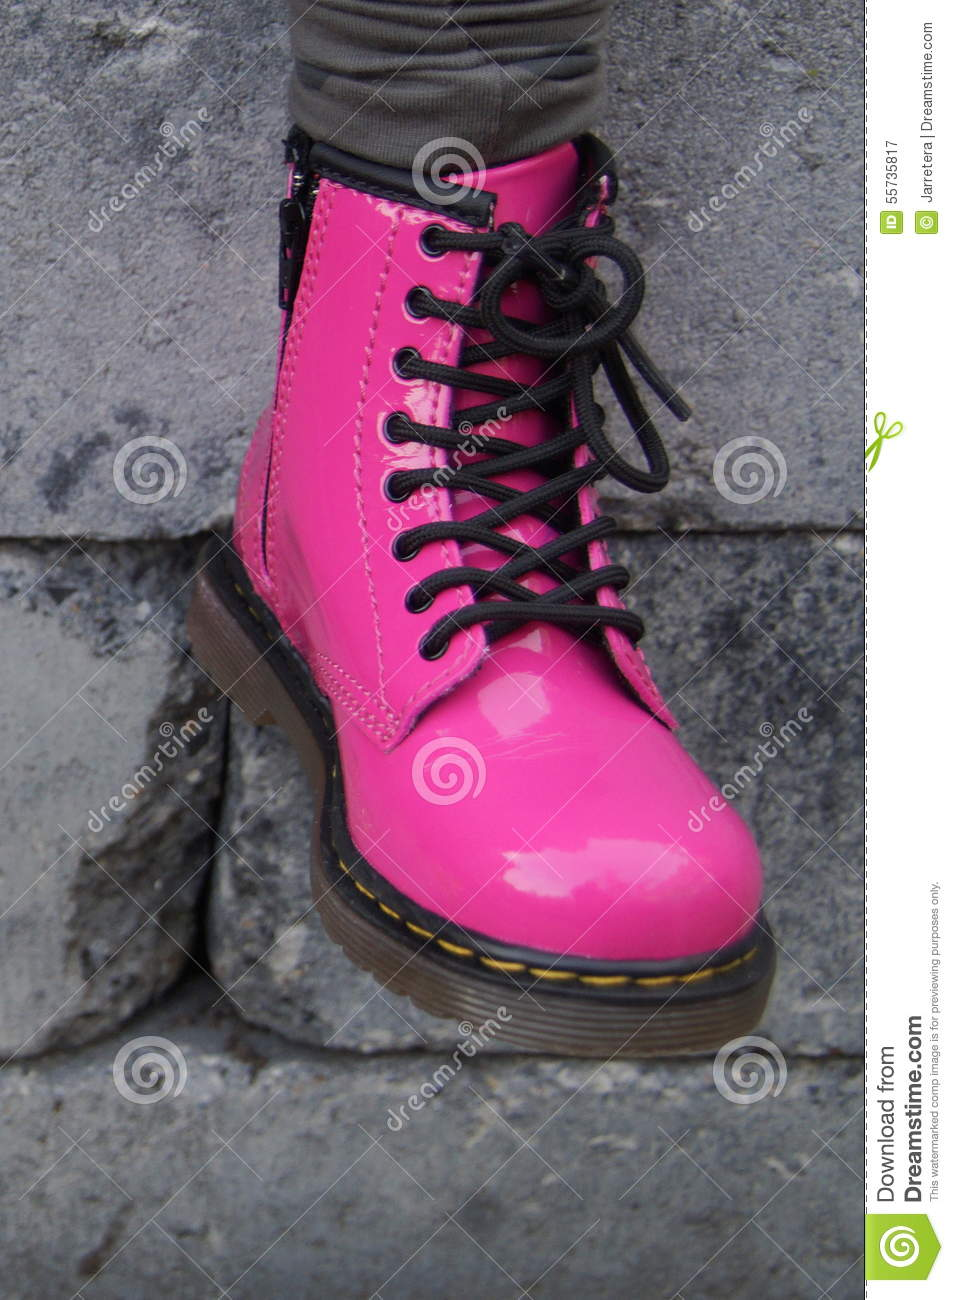 Punk Alternative Girl Or Woman Boots Pink Shoes Stock